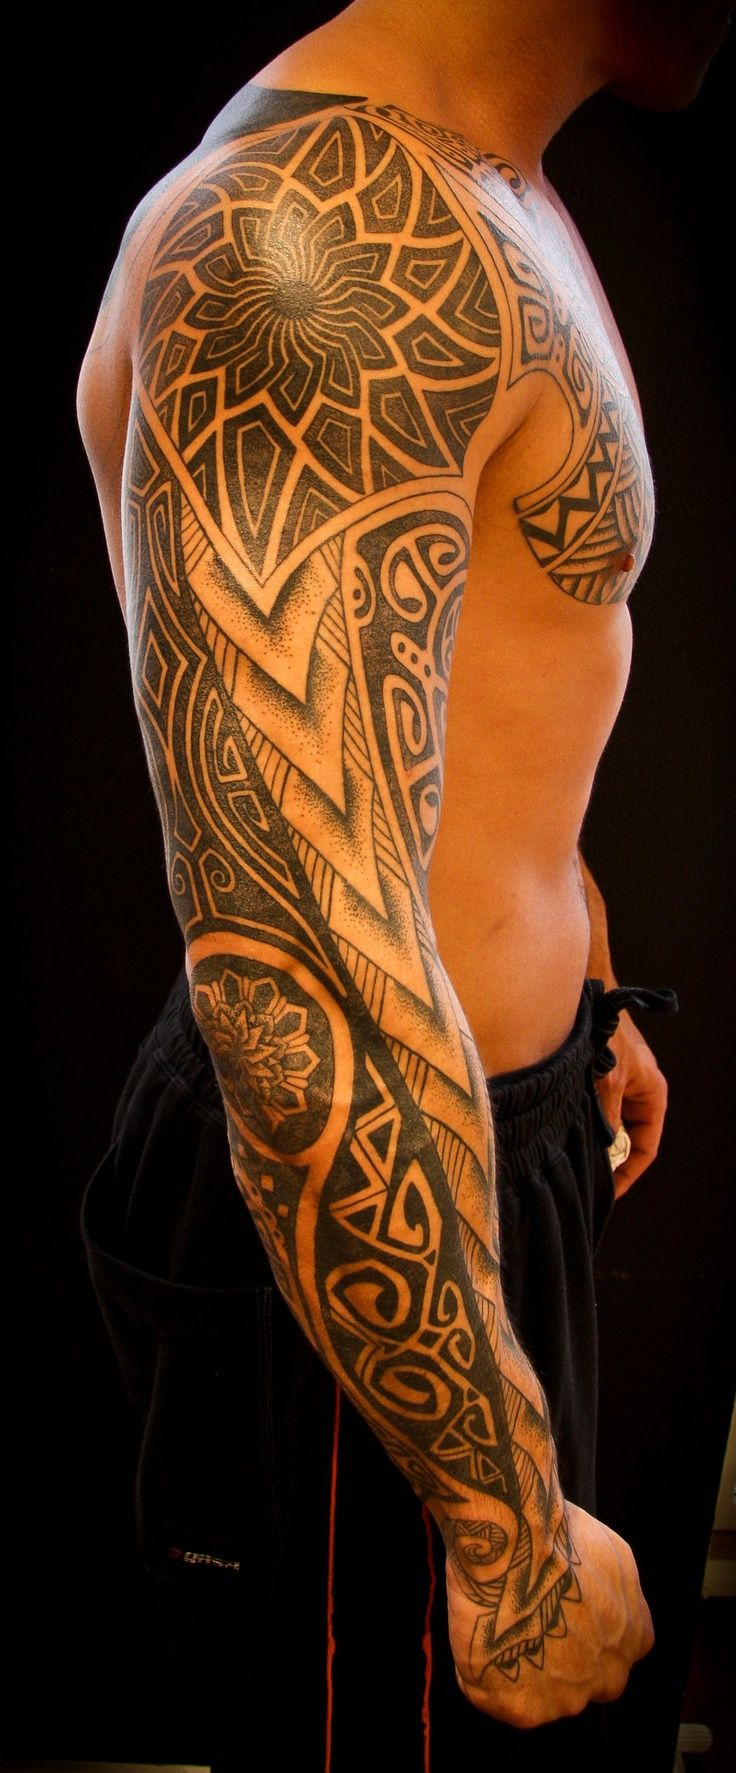 Arm tattoos for men designs and ideas for guys for Forearm tattoo sleeves